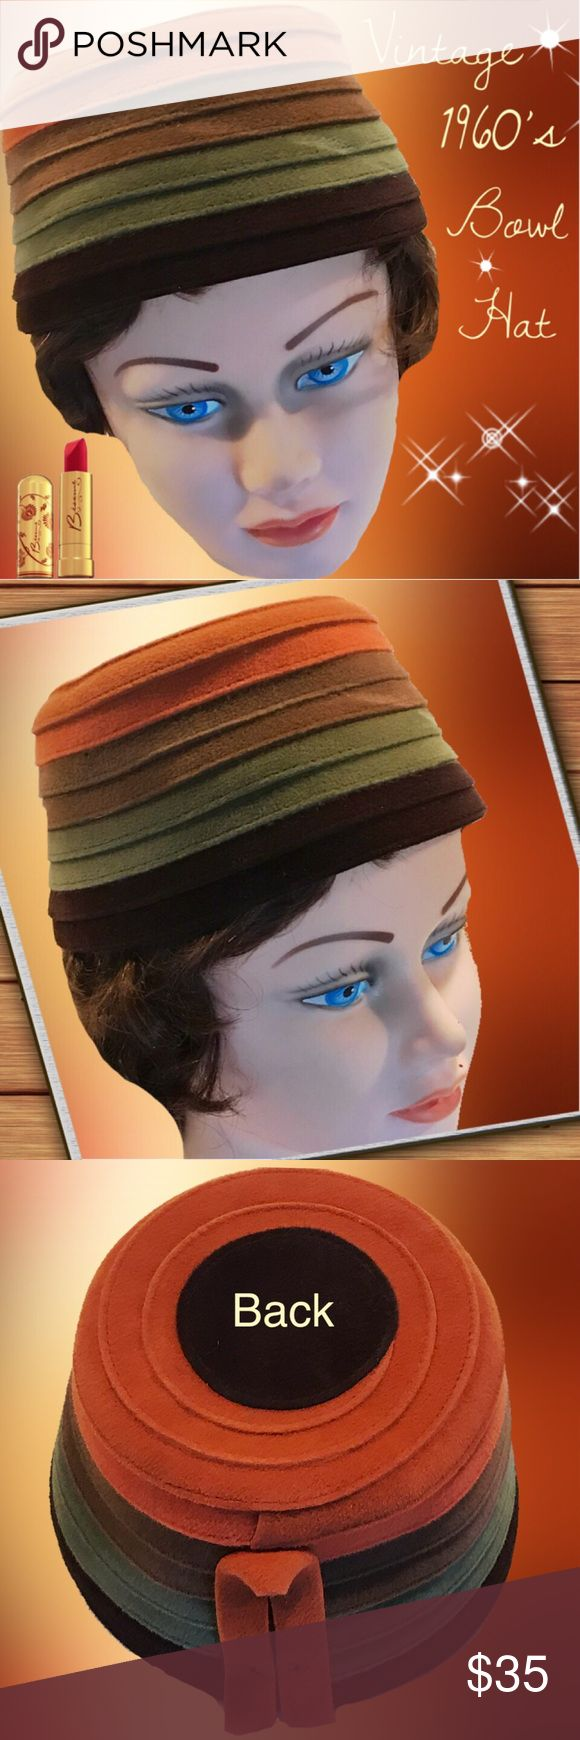 "VINTAGE 1960's Bowl Hat Vintage retro 1960's bowl hat in excellent condition. Inner circumference is 21"". Accessories Hats"